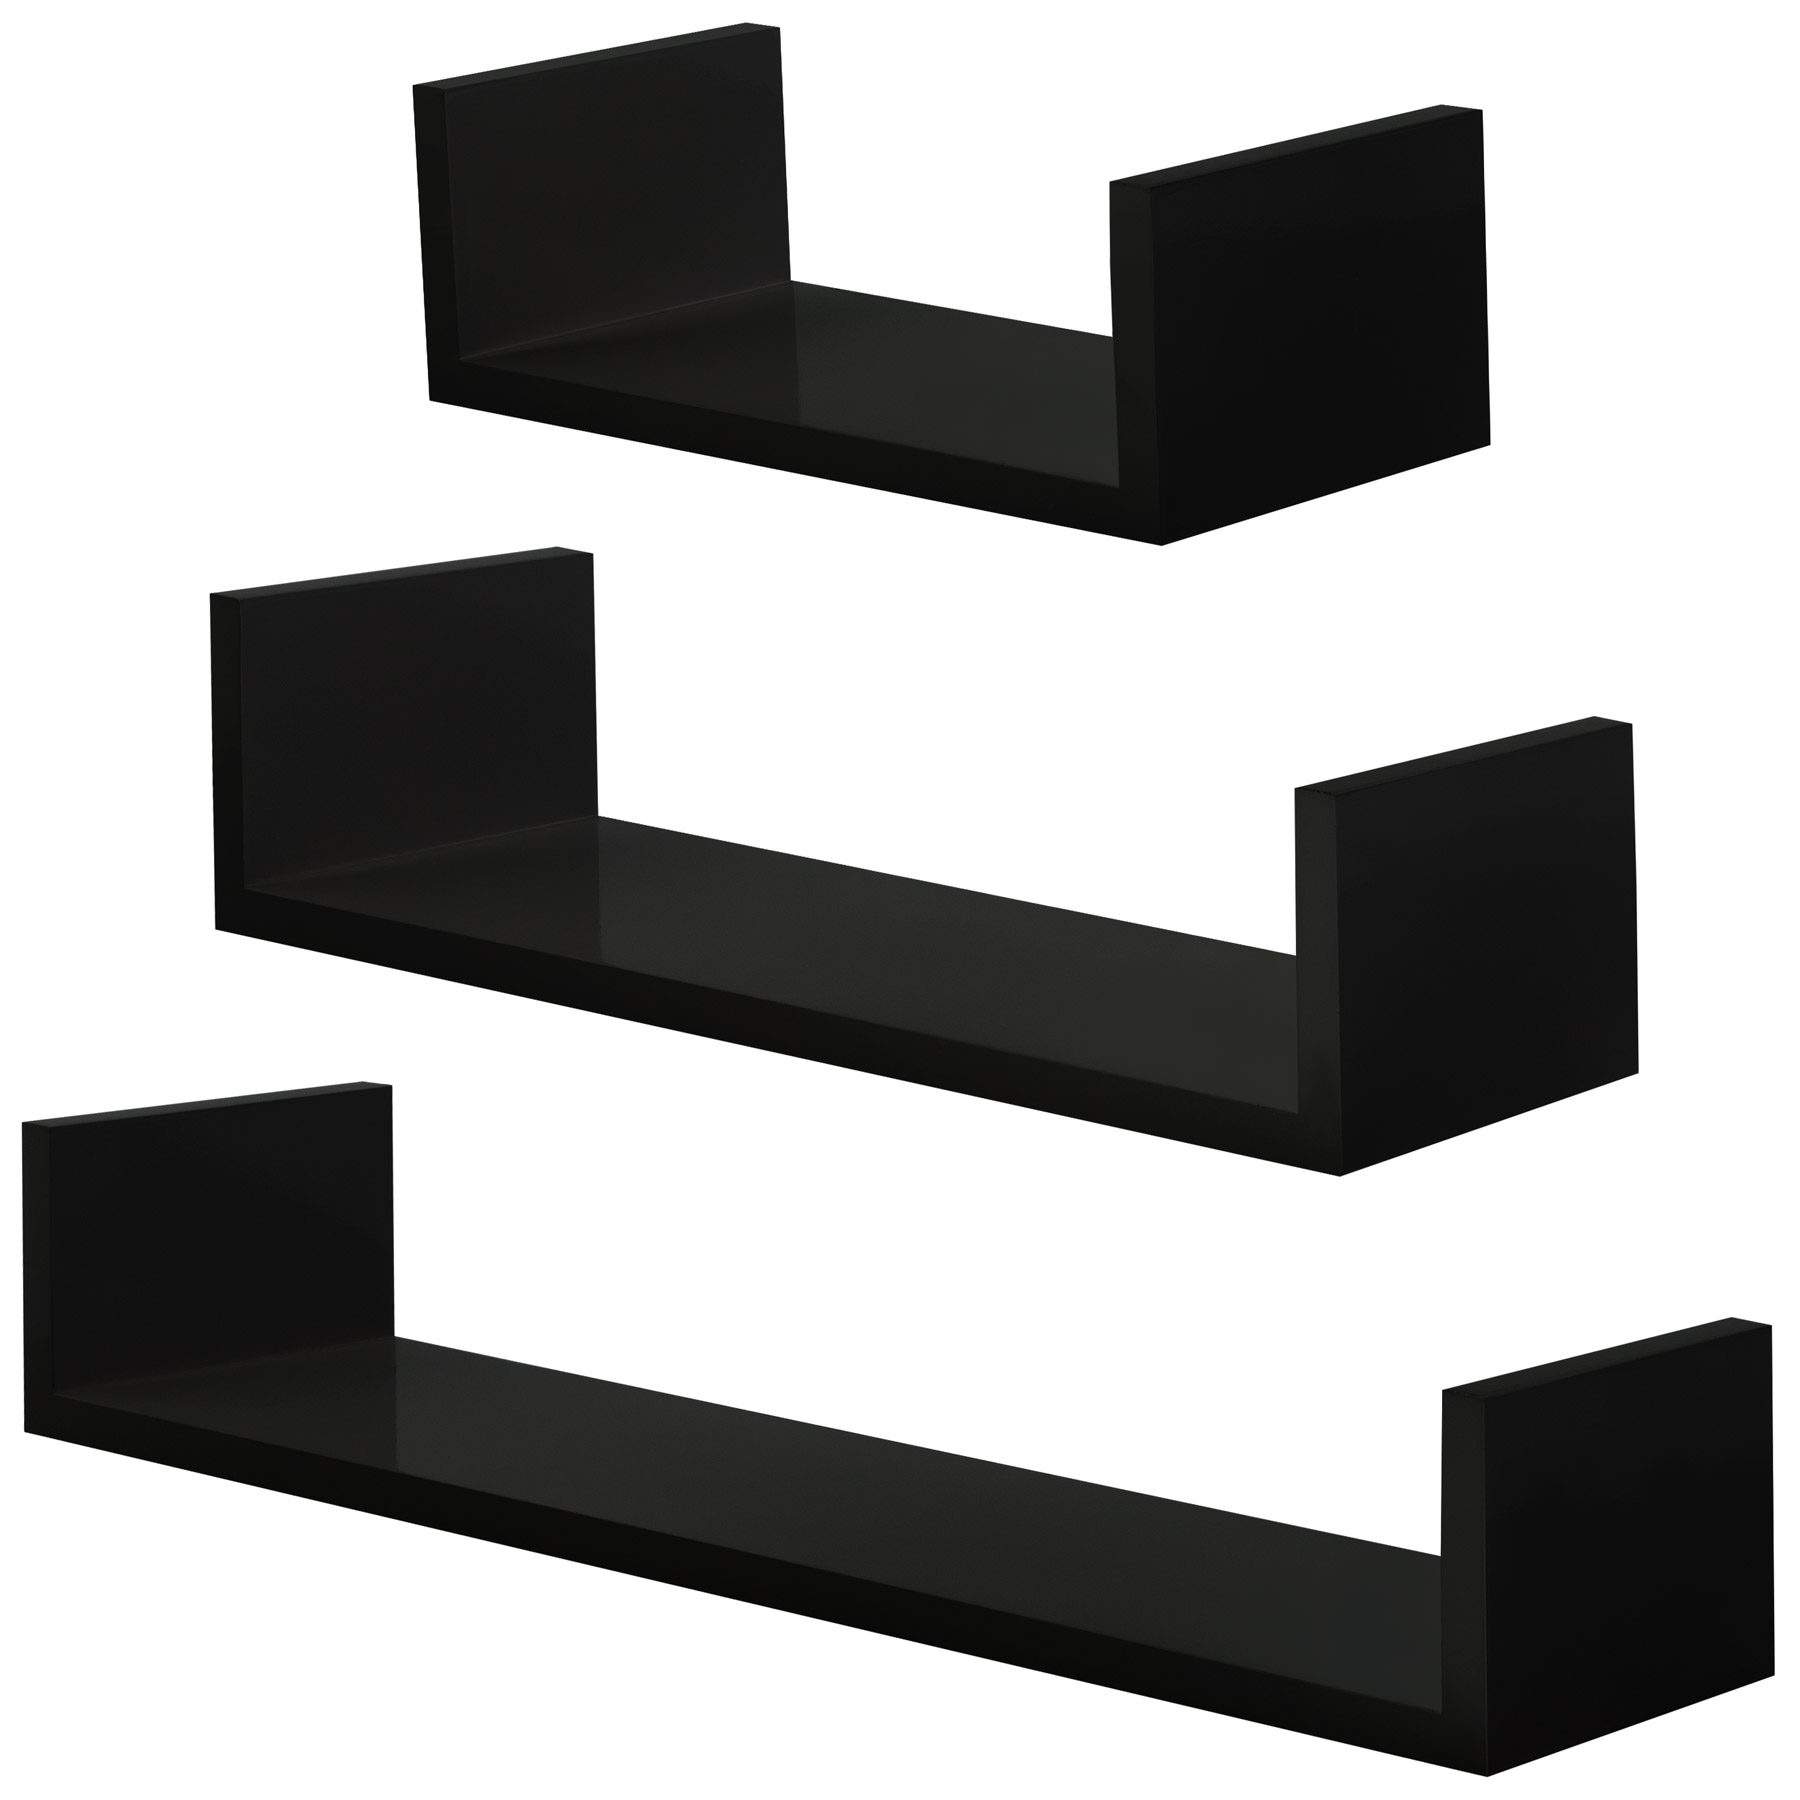 black shelves set wall mounted bookshelf decorative storage self high gloss wood ebay. Black Bedroom Furniture Sets. Home Design Ideas